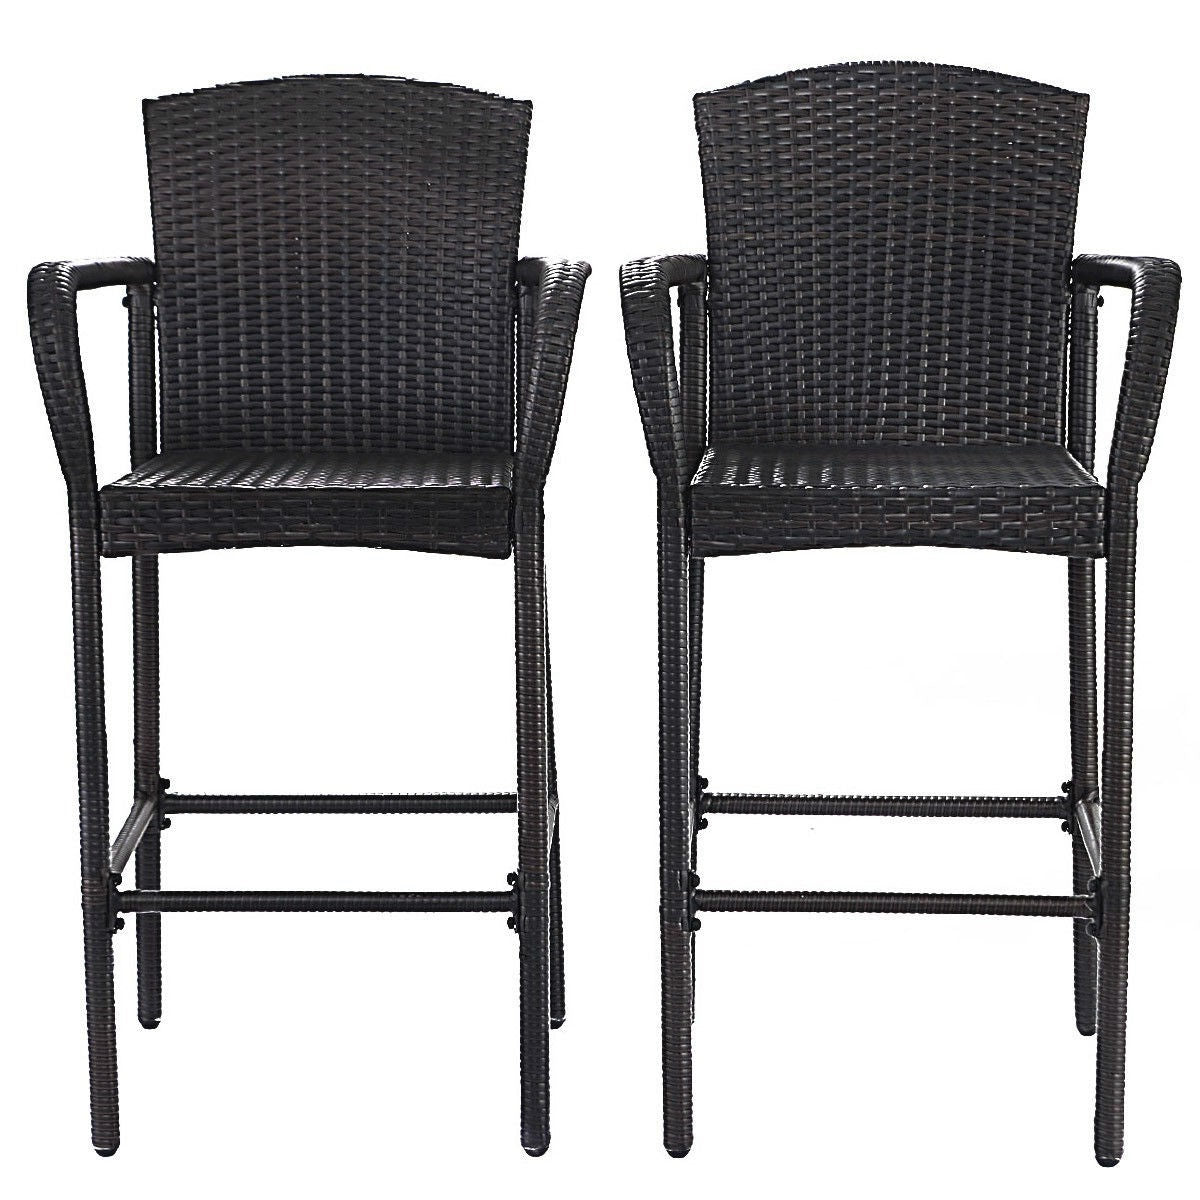 Set of 2 47-inch Bar Height Brown Rattan Barstool Chairs